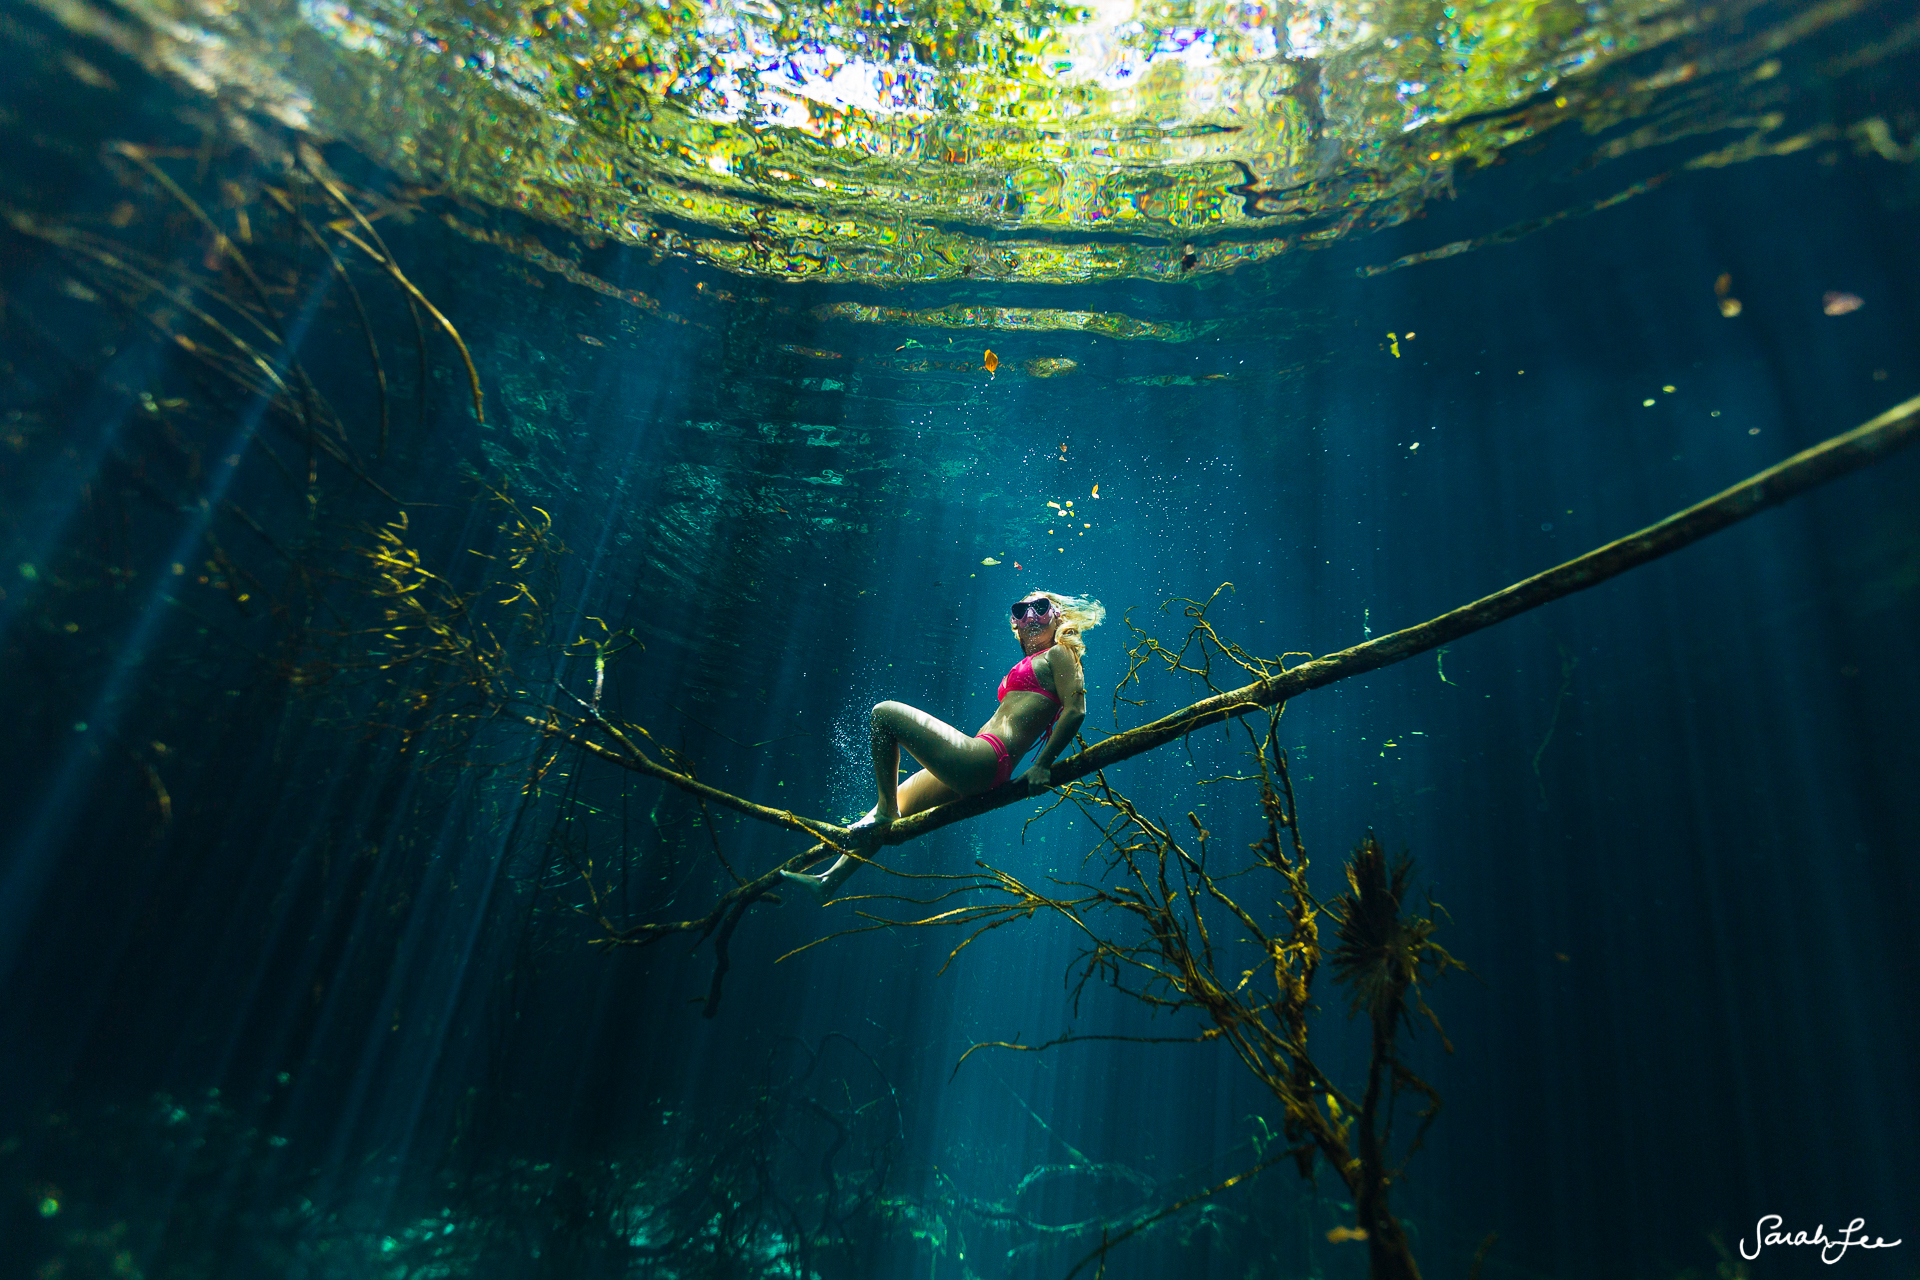 Exploring an untouched cenote with Alison Teal and cave explorer Sam Meacham. Photo taken with a Canon 5D MKIII + 8-15 fisheye lens in an Outex Water Housing and dome port.